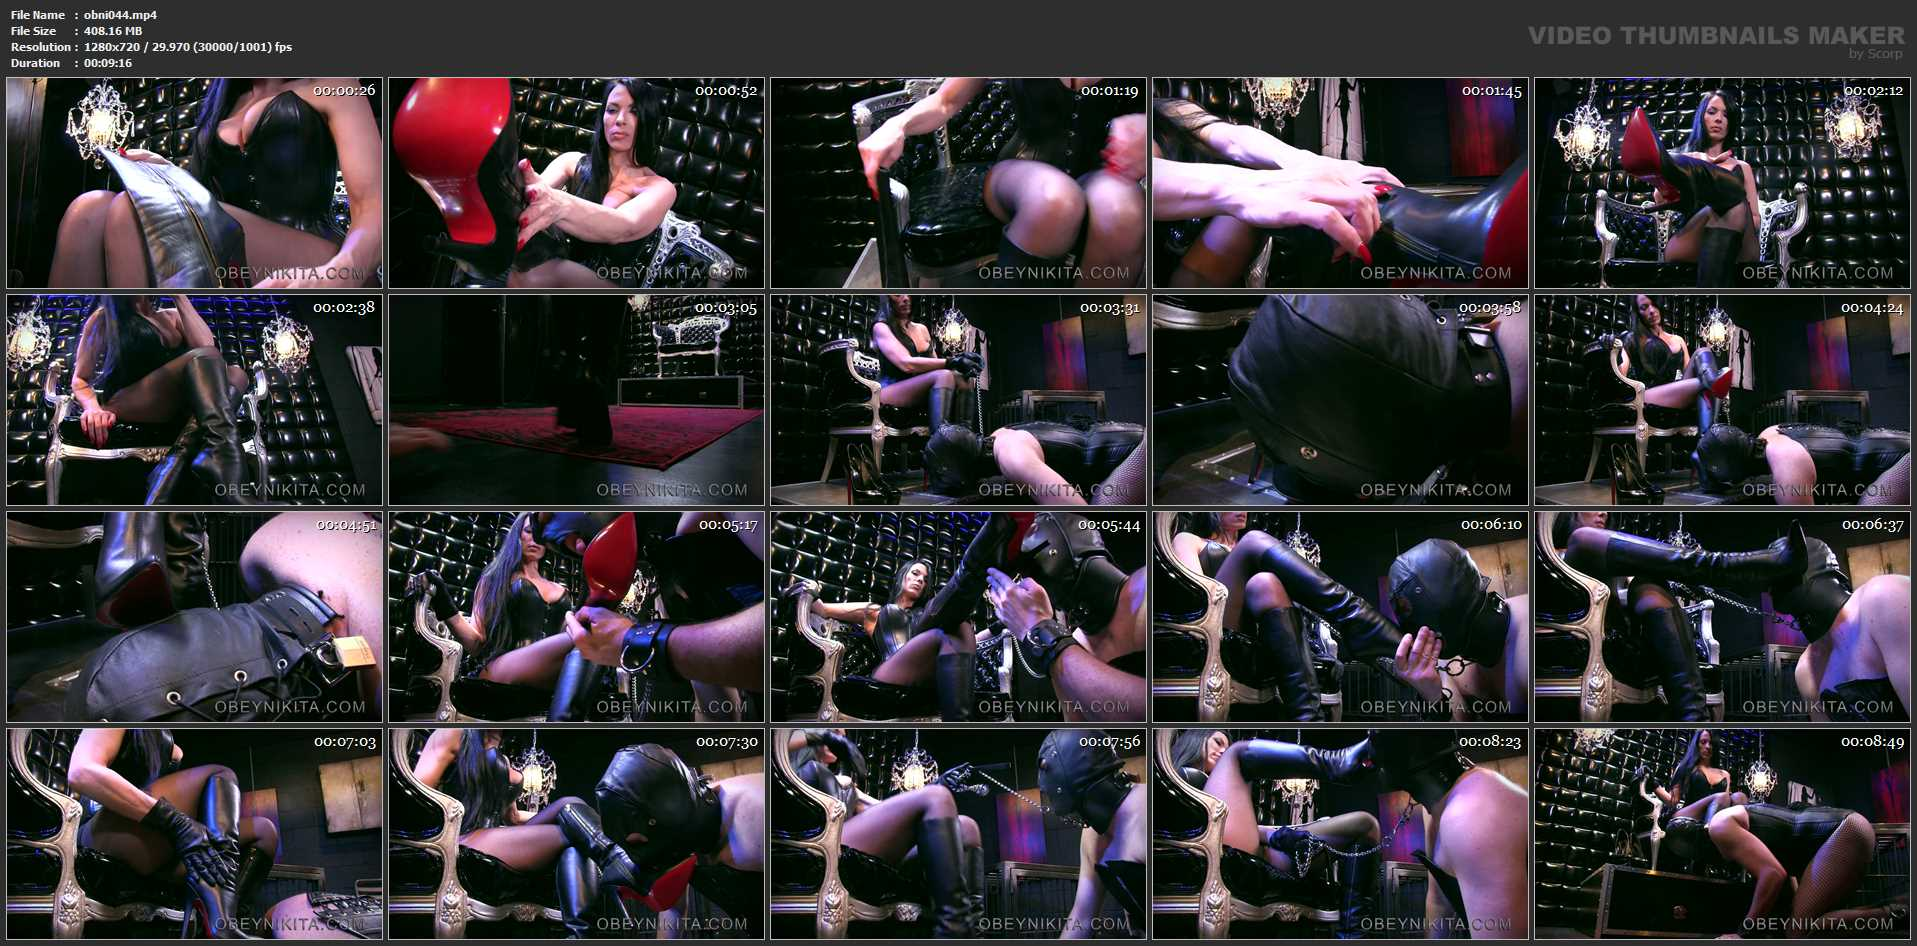 Mistress Nikita In Scene: Ucky Little Bootlicker - OBEYNIKITA - HD/720p/MP4